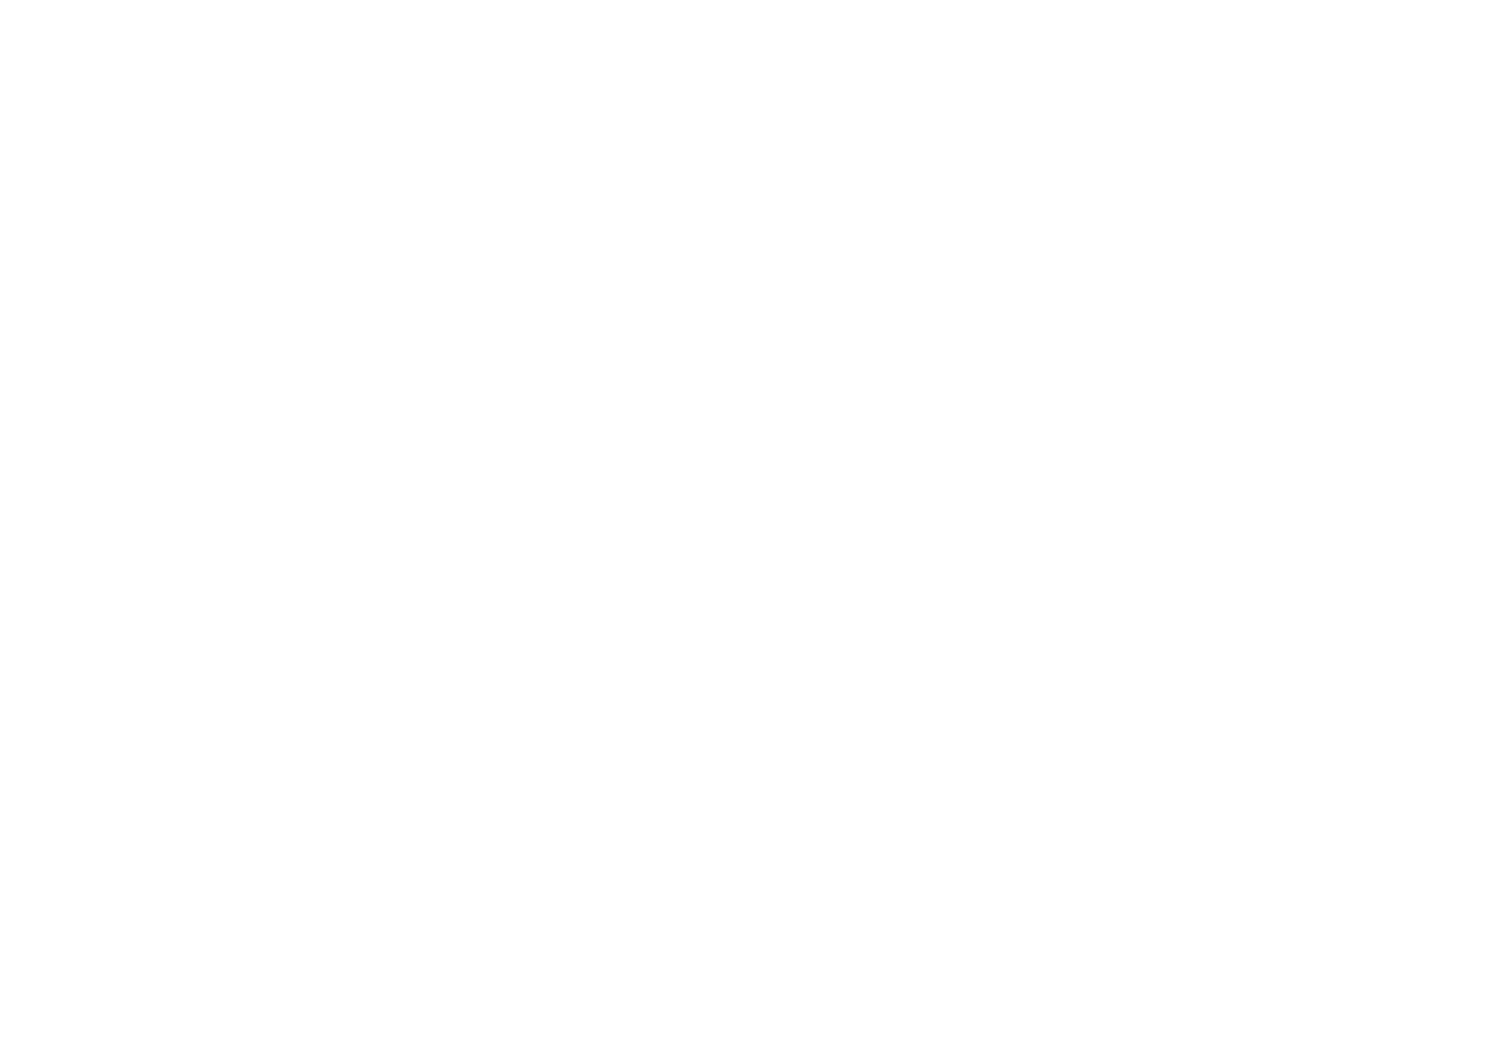 PHOTO&NOTES